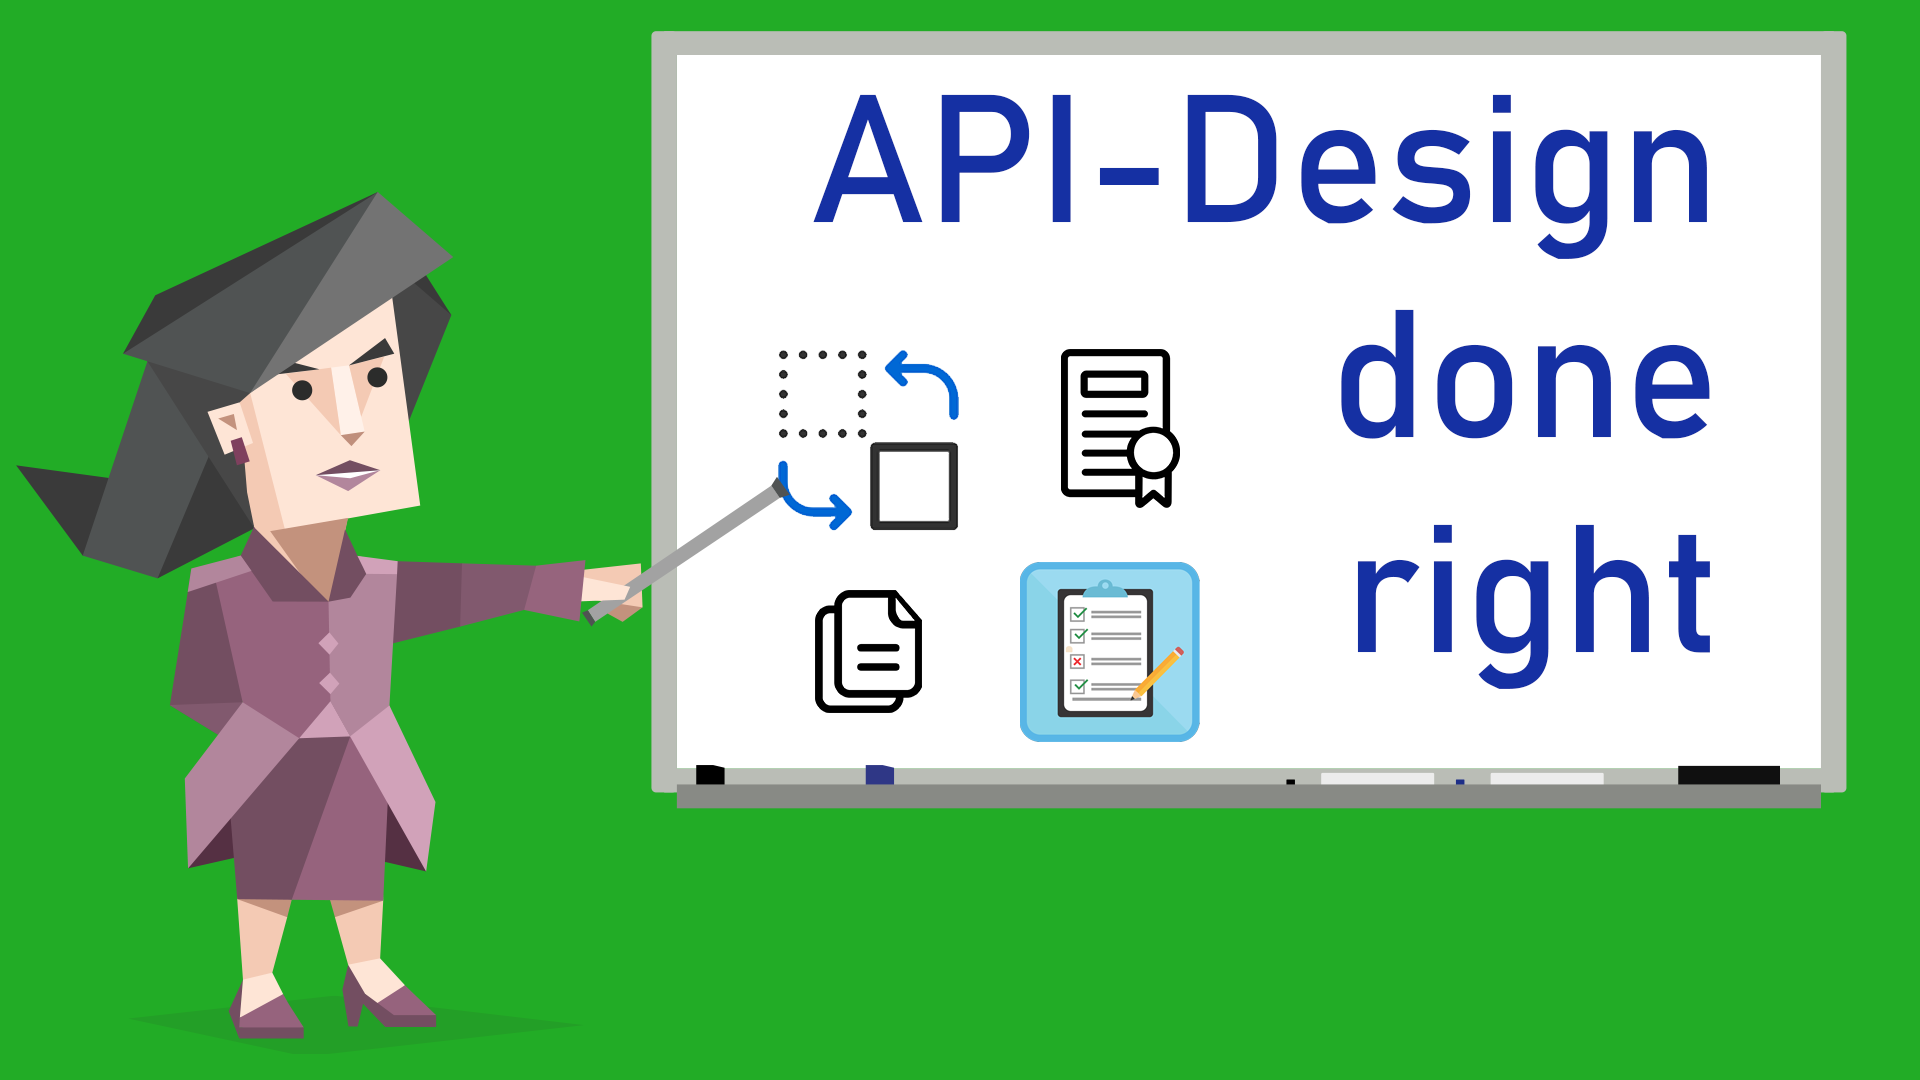 API-Design done right